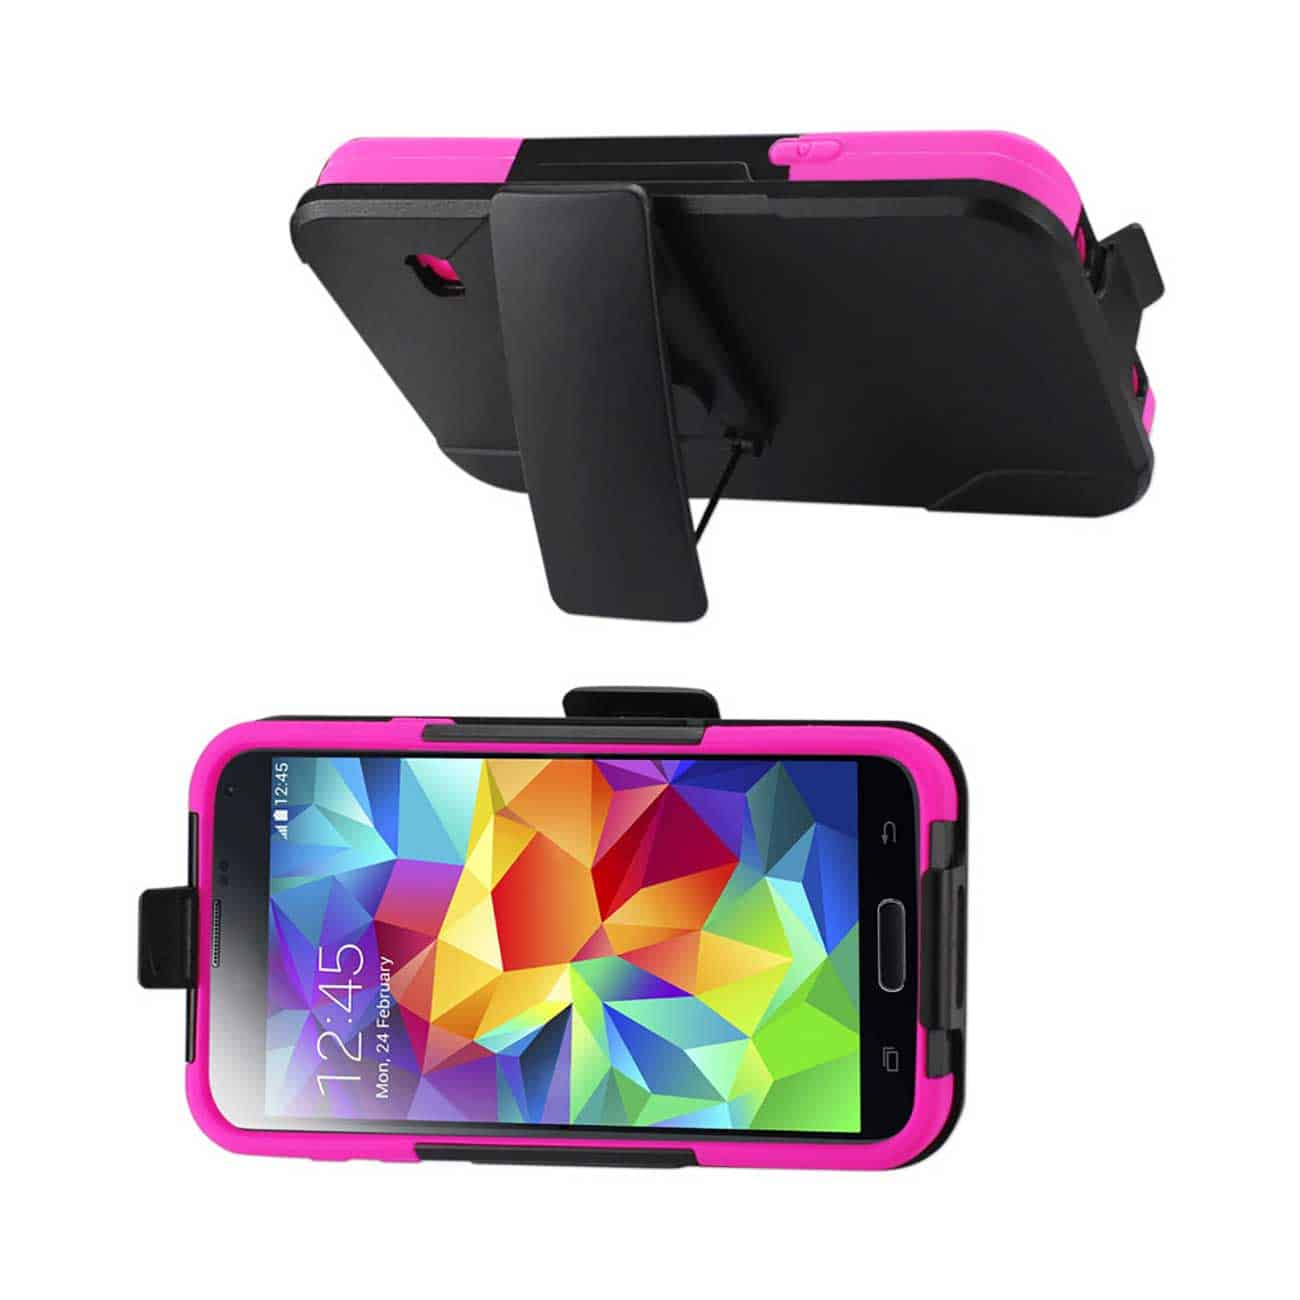 SAMSUNG GALAXY S5 HYBRID HEAVY DUTY HOLSTER COMBO CASE IN HOT PINK BLACK